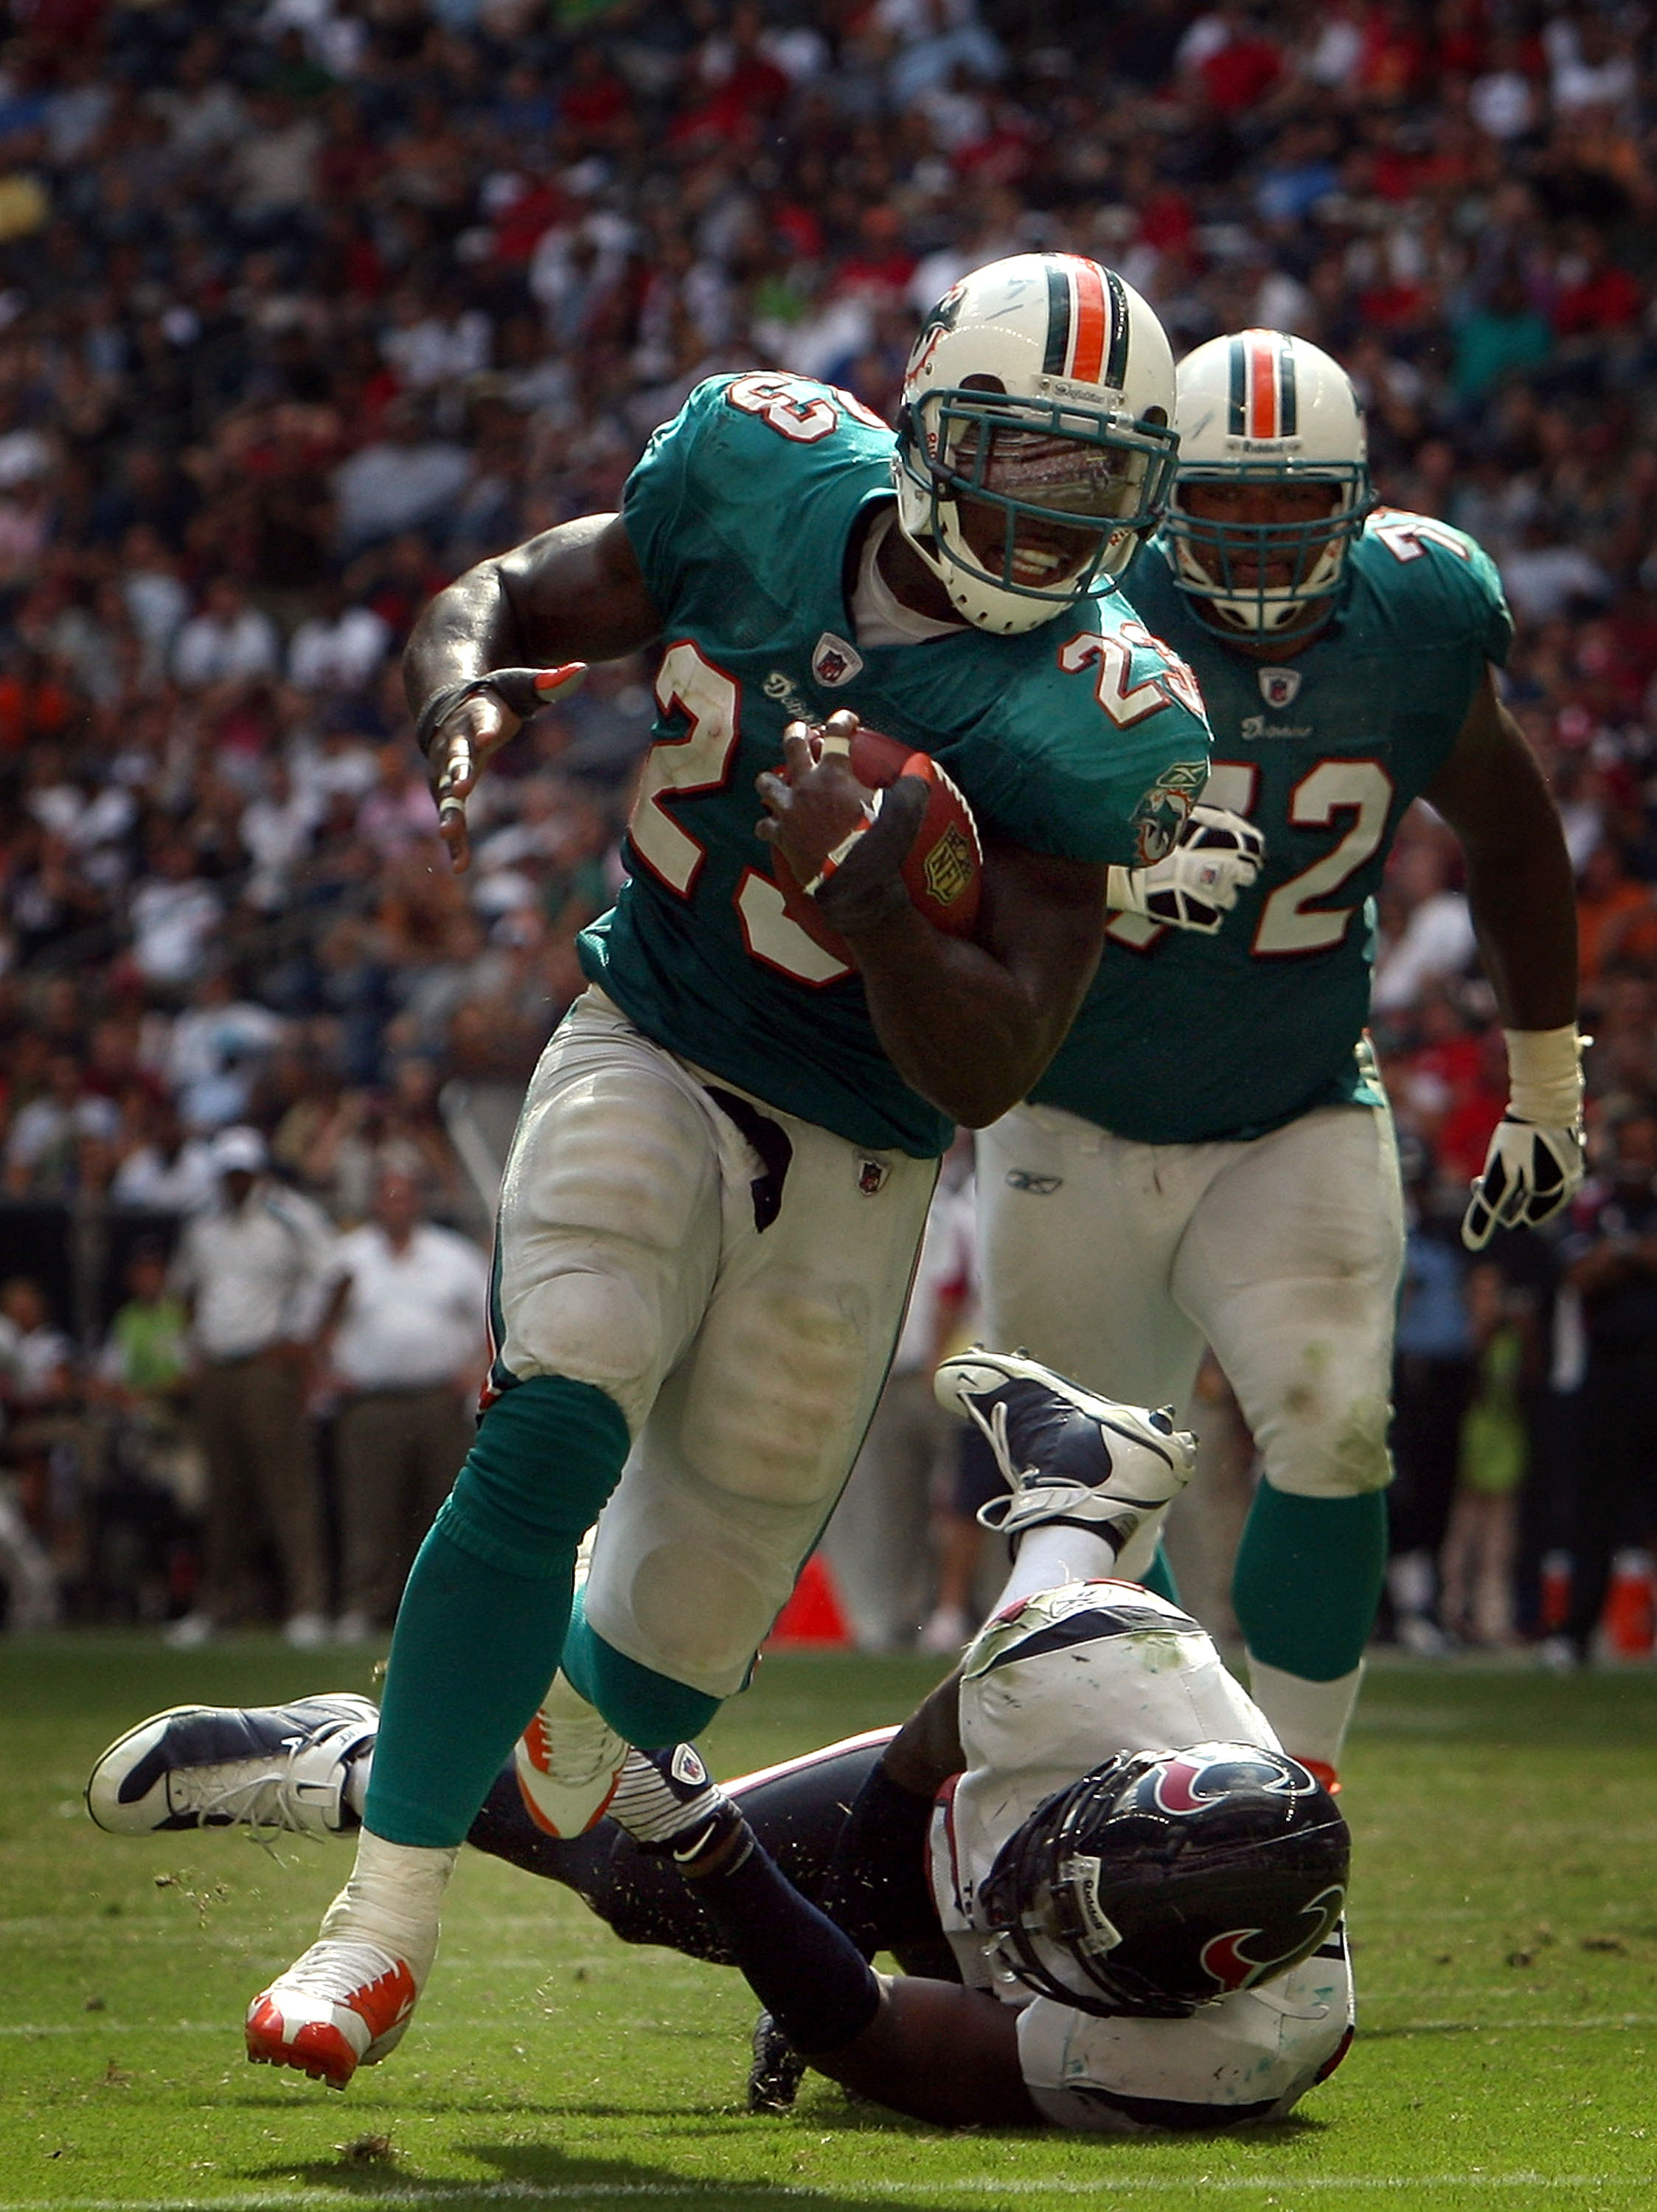 HOUSTON - OCTOBER 12:  Running back Ronnie Brown #23 of the Miami Dolphins runs for a touchdown past Zac Diles #54 of the Houston Texans at Reliant Stadium on October 12, 2008 in Houston, Texas.  (Photo by Ronald Martinez/Getty Images)